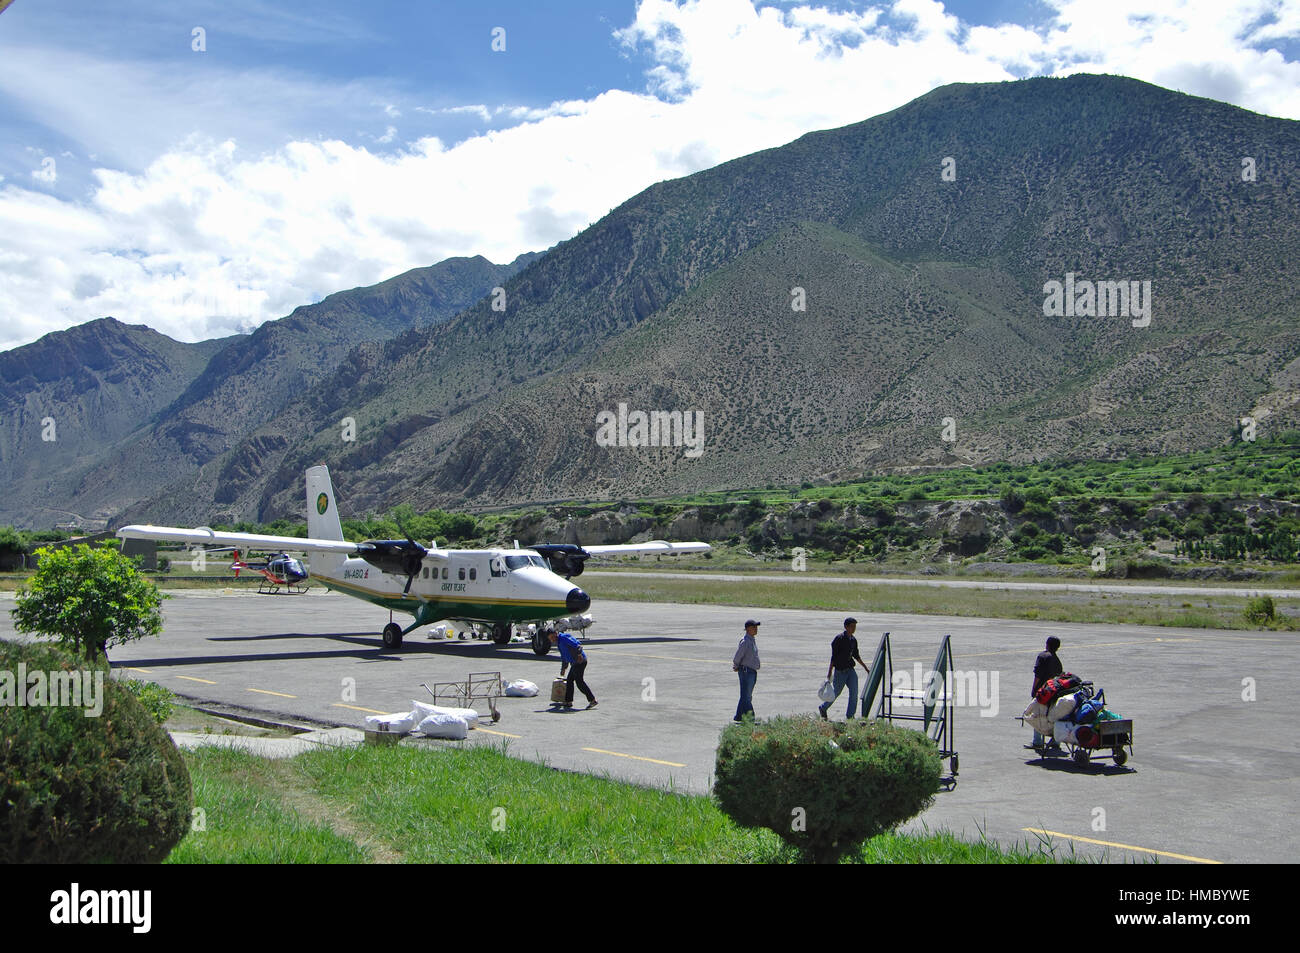 JOMSON, NP - CIRCA AUGUST 2012 - Airplane on the Jomson airstrip. The Jomson airport is known as one of the most - Stock Image